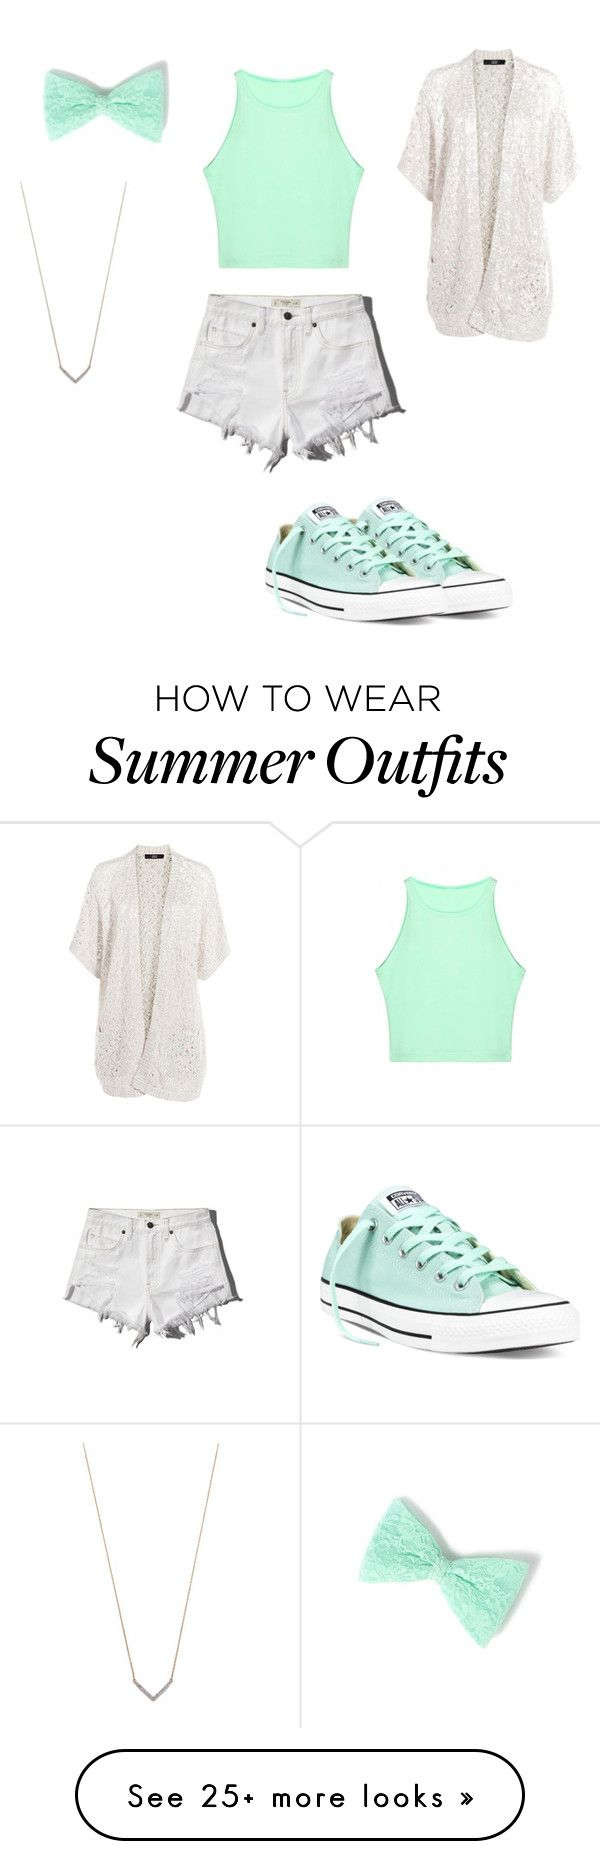 """Casual Summer Outfit"" by hannahjorstad on Polyvore featuring Abercrombie & Fitch, Adina Reyter, claire's, Steffen Schraut, Converse, women's clothing, women, female, woman and misses"